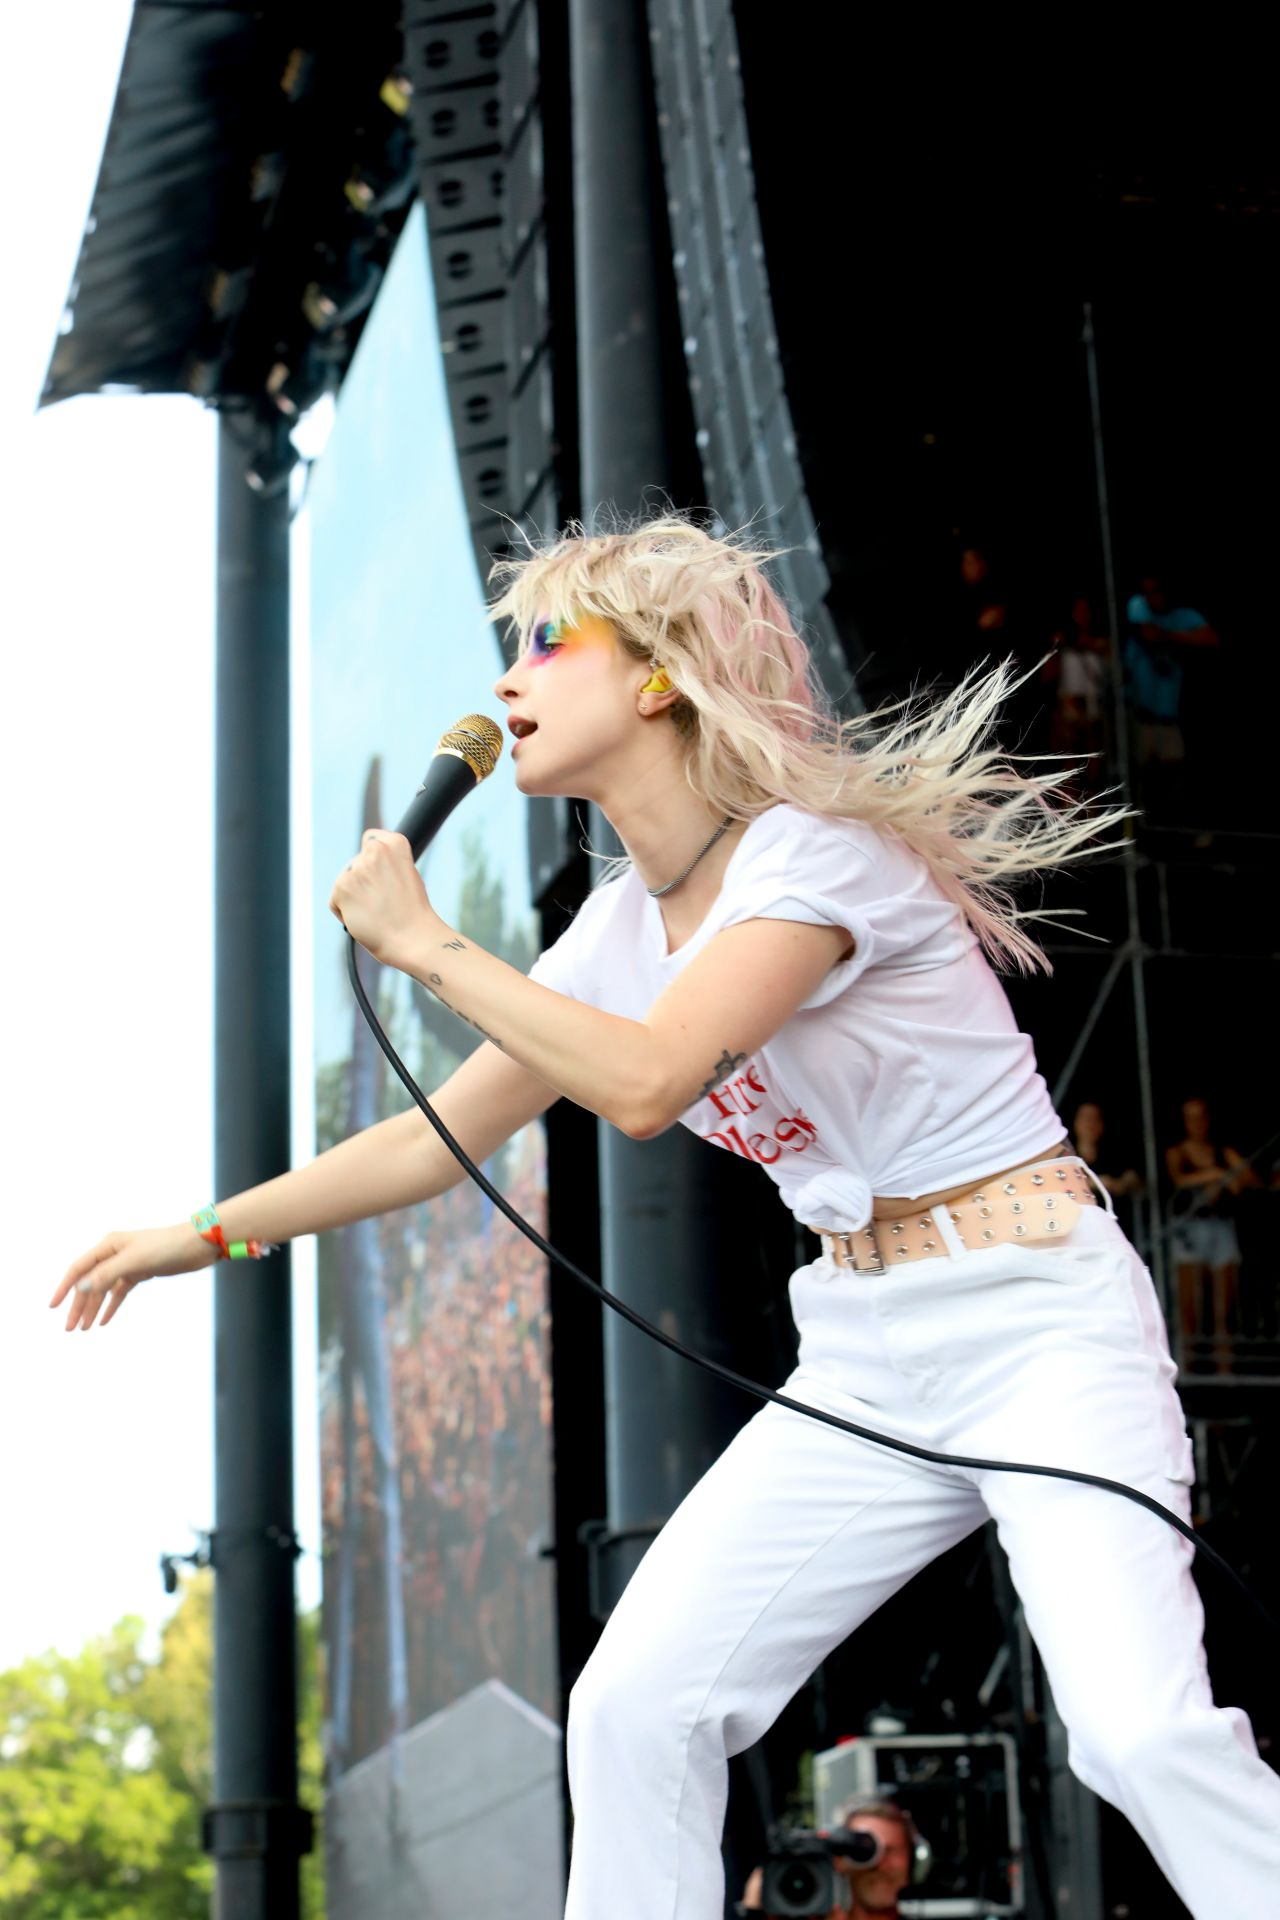 Hayley Williams - Performs at the Bonnaroo Music and Arts